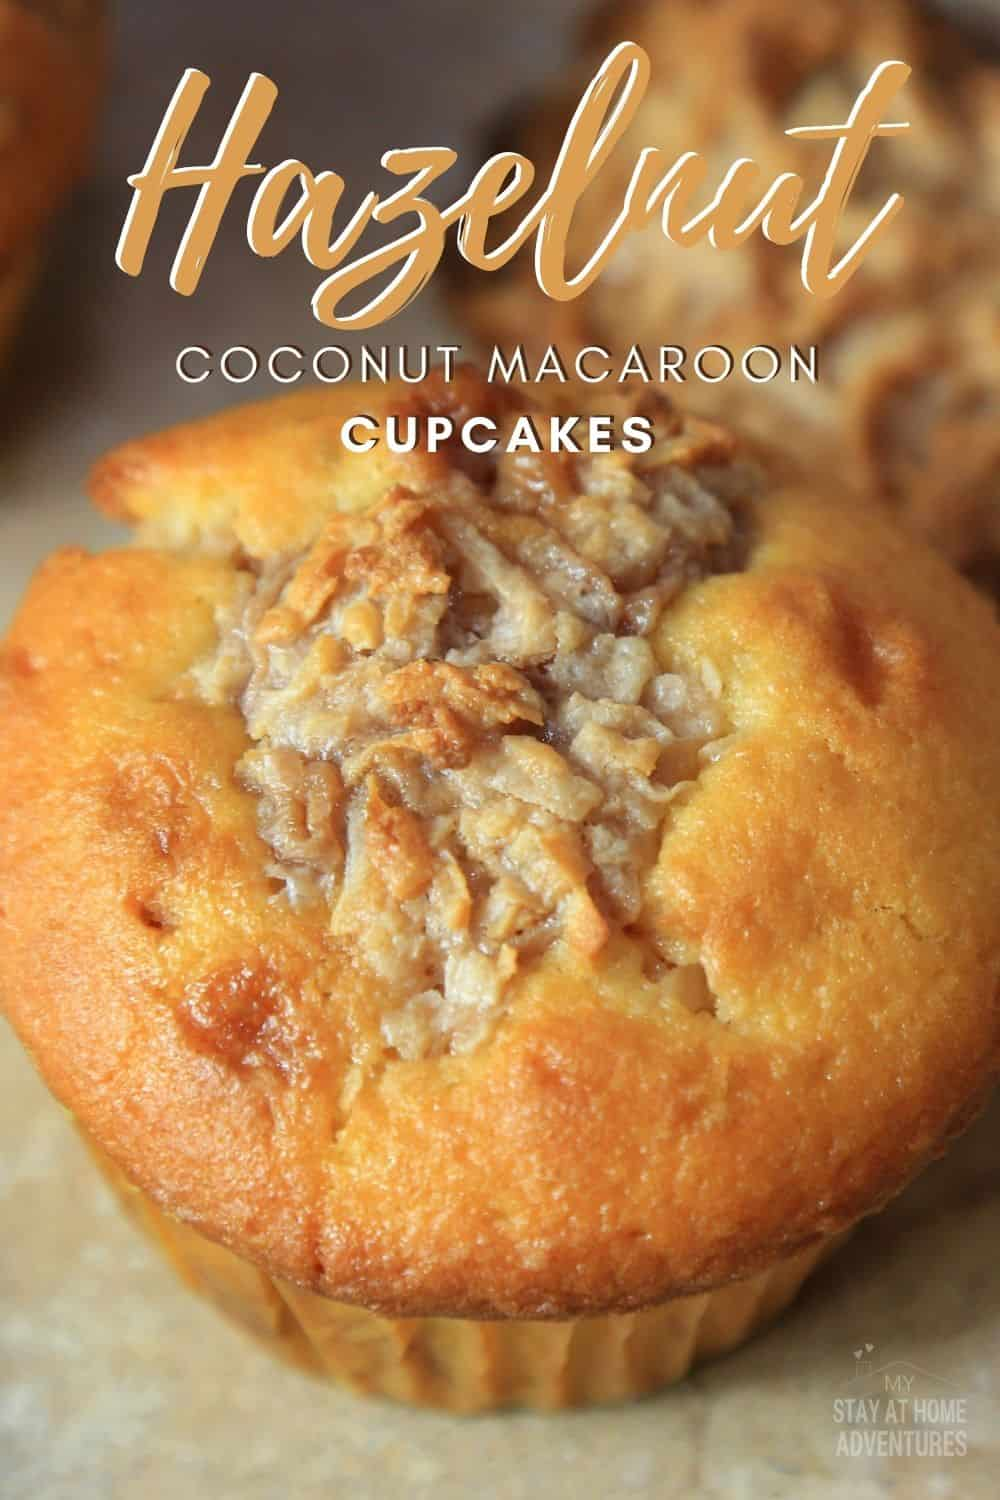 Calling all coconut macaroon lovers out there! Delicious cupcakes filled with hazelnut (Nutella) coconuts in the middle. via @mystayathome